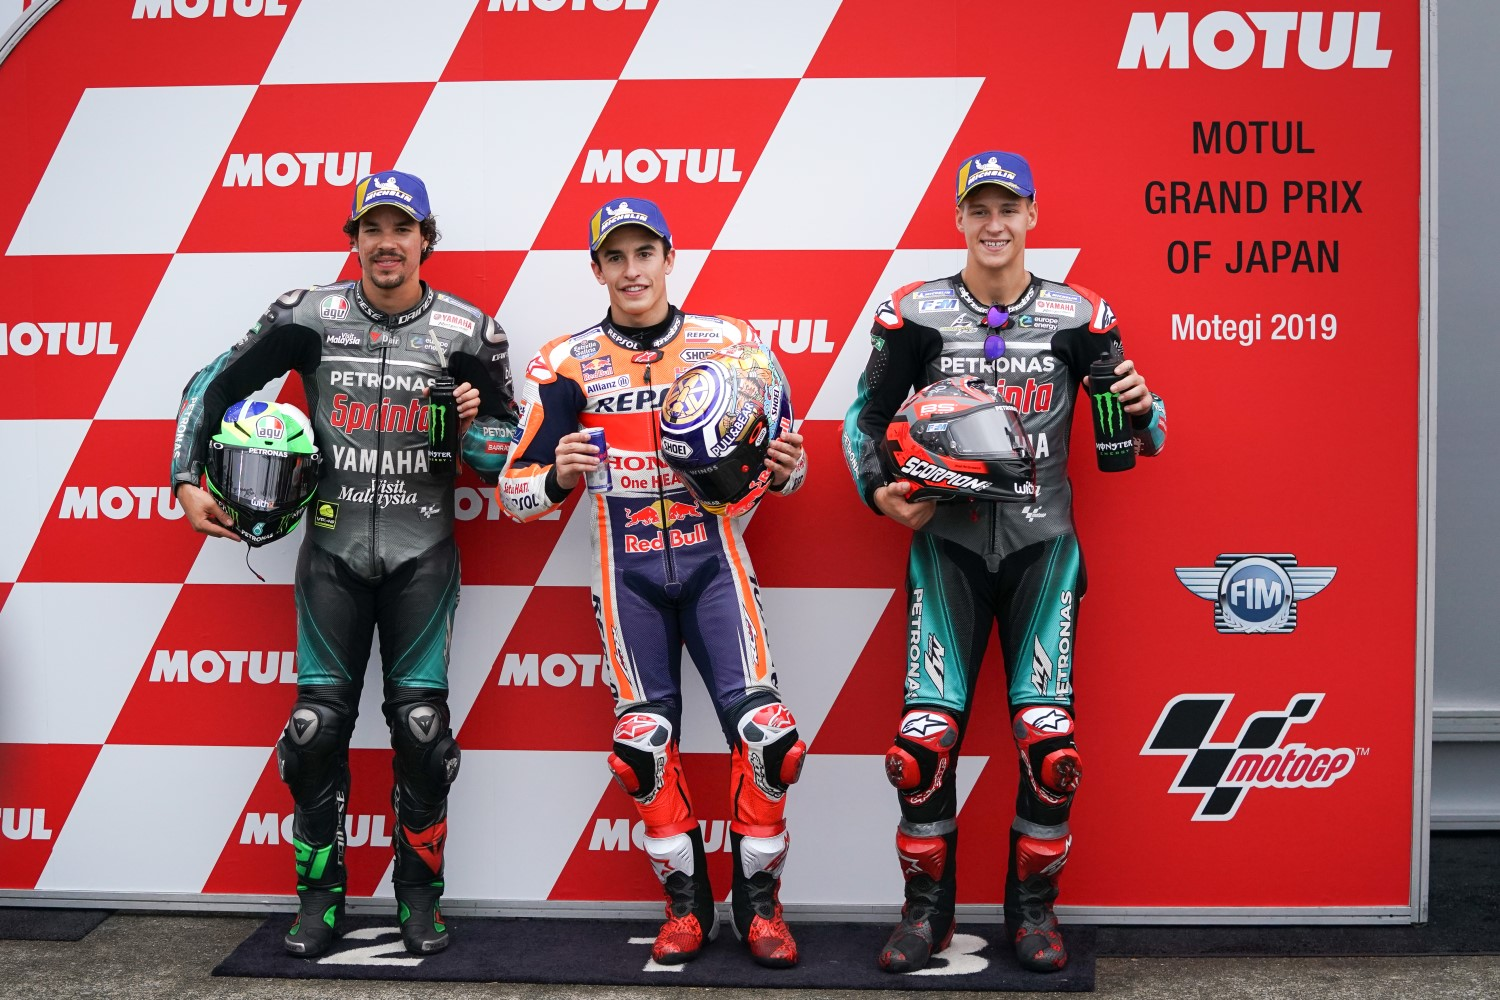 Top3 Qualifiers - Modibelli (2nd), Marquez (1st) ad Quartararo